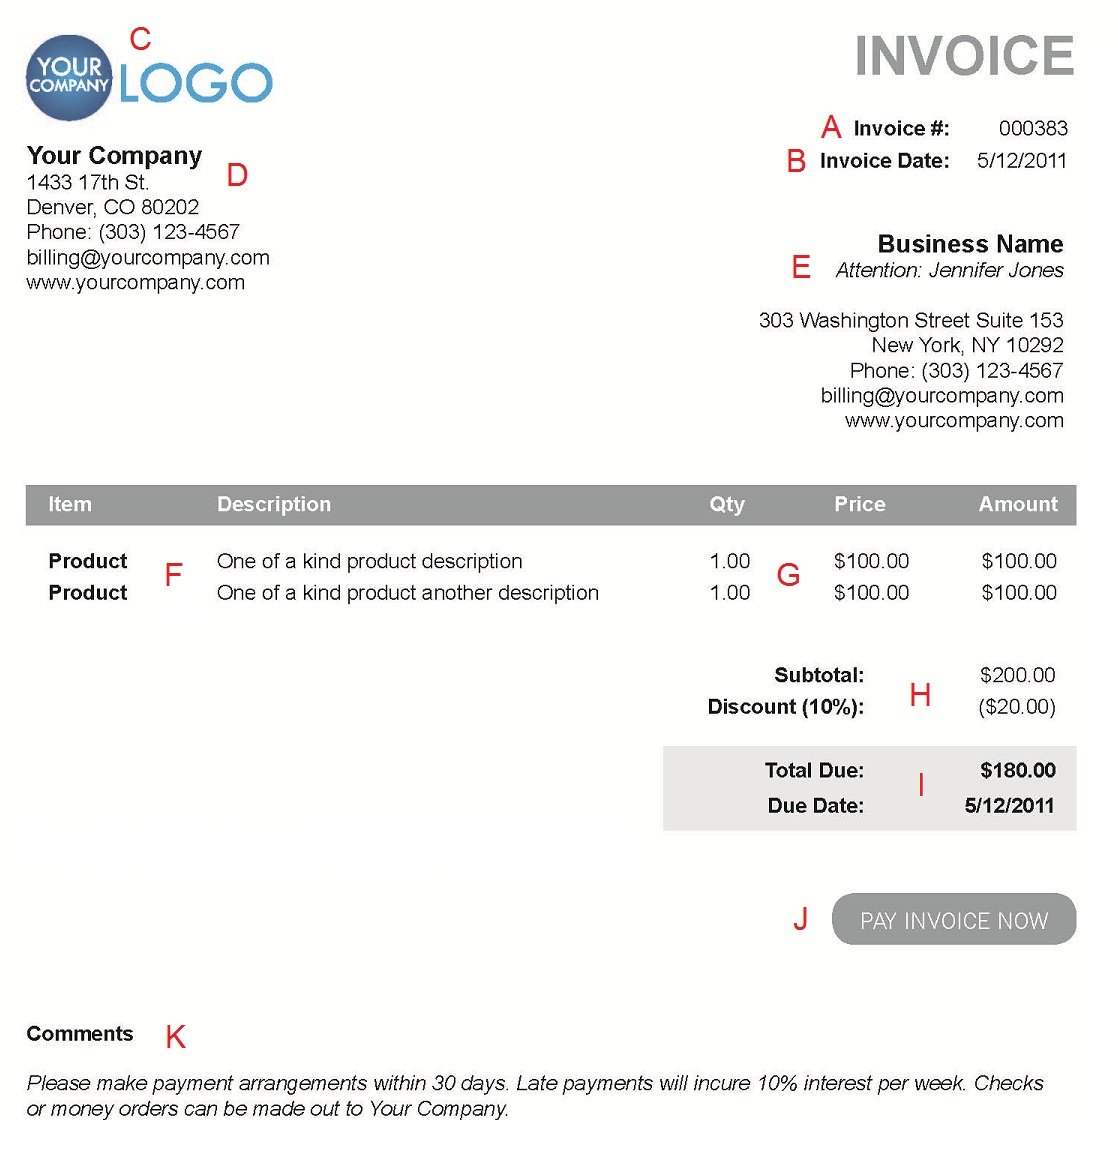 Hucareus  Personable The  Different Sections Of An Electronic Payment Invoice With Marvelous A  With Appealing  Below Factory Invoice Also Open Source Invoicing Software In Addition Invoice Application And Electronic Invoice Processing As Well As Freelance Invoicing Additionally Invoice Processing Automation From Paysimplecom With Hucareus  Marvelous The  Different Sections Of An Electronic Payment Invoice With Appealing A  And Personable  Below Factory Invoice Also Open Source Invoicing Software In Addition Invoice Application From Paysimplecom